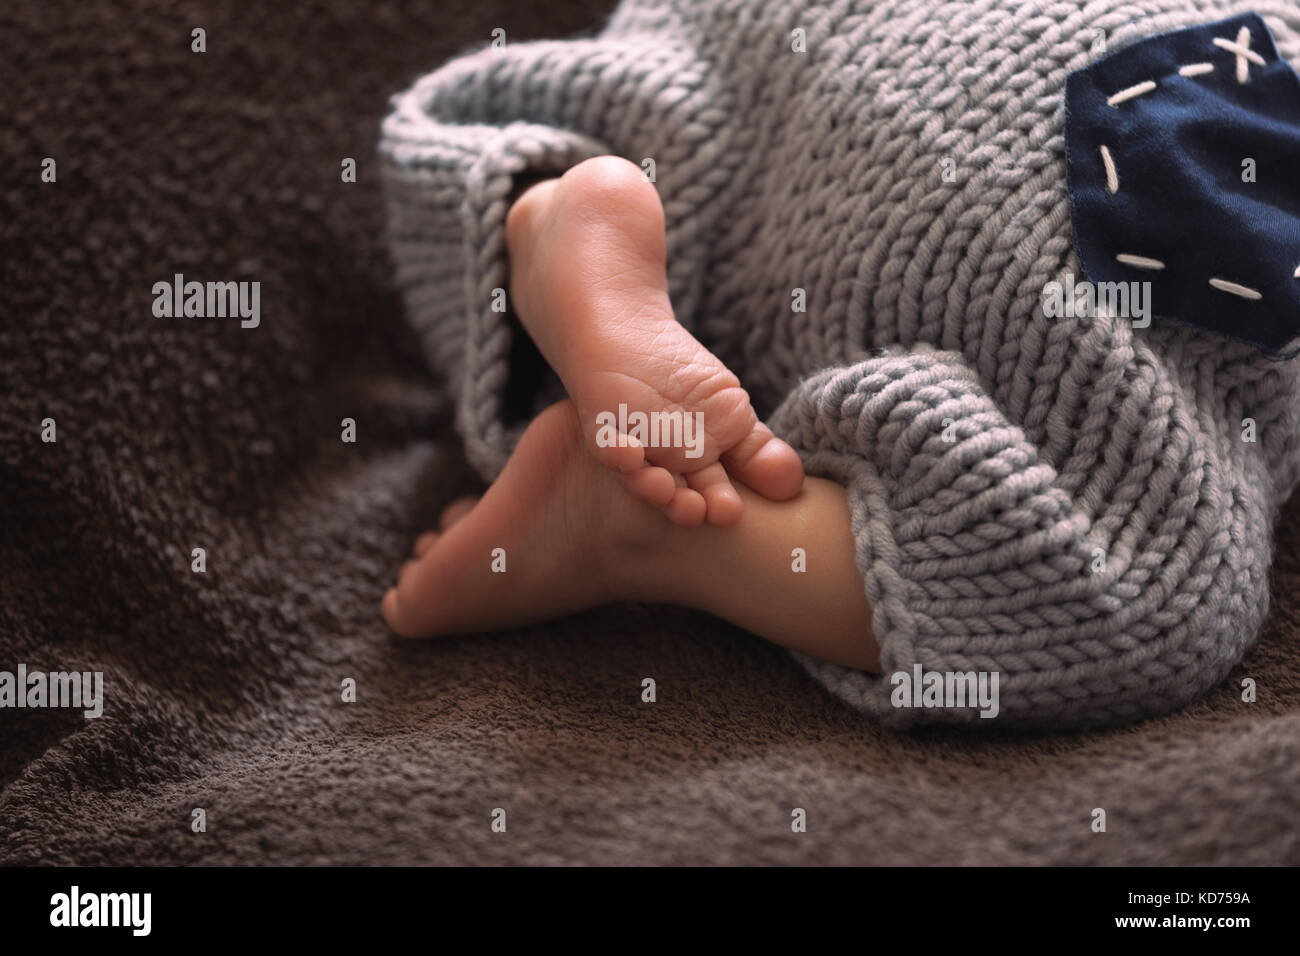 The heels of the newborn - Stock Image